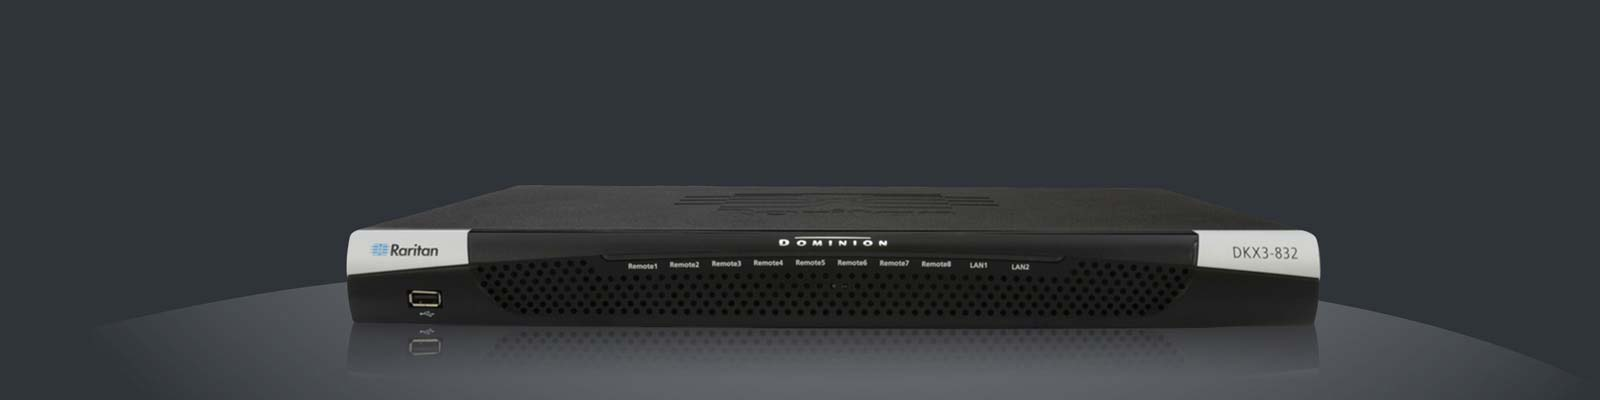 Raritan Dominion DKX3 KVM Over IP Switch